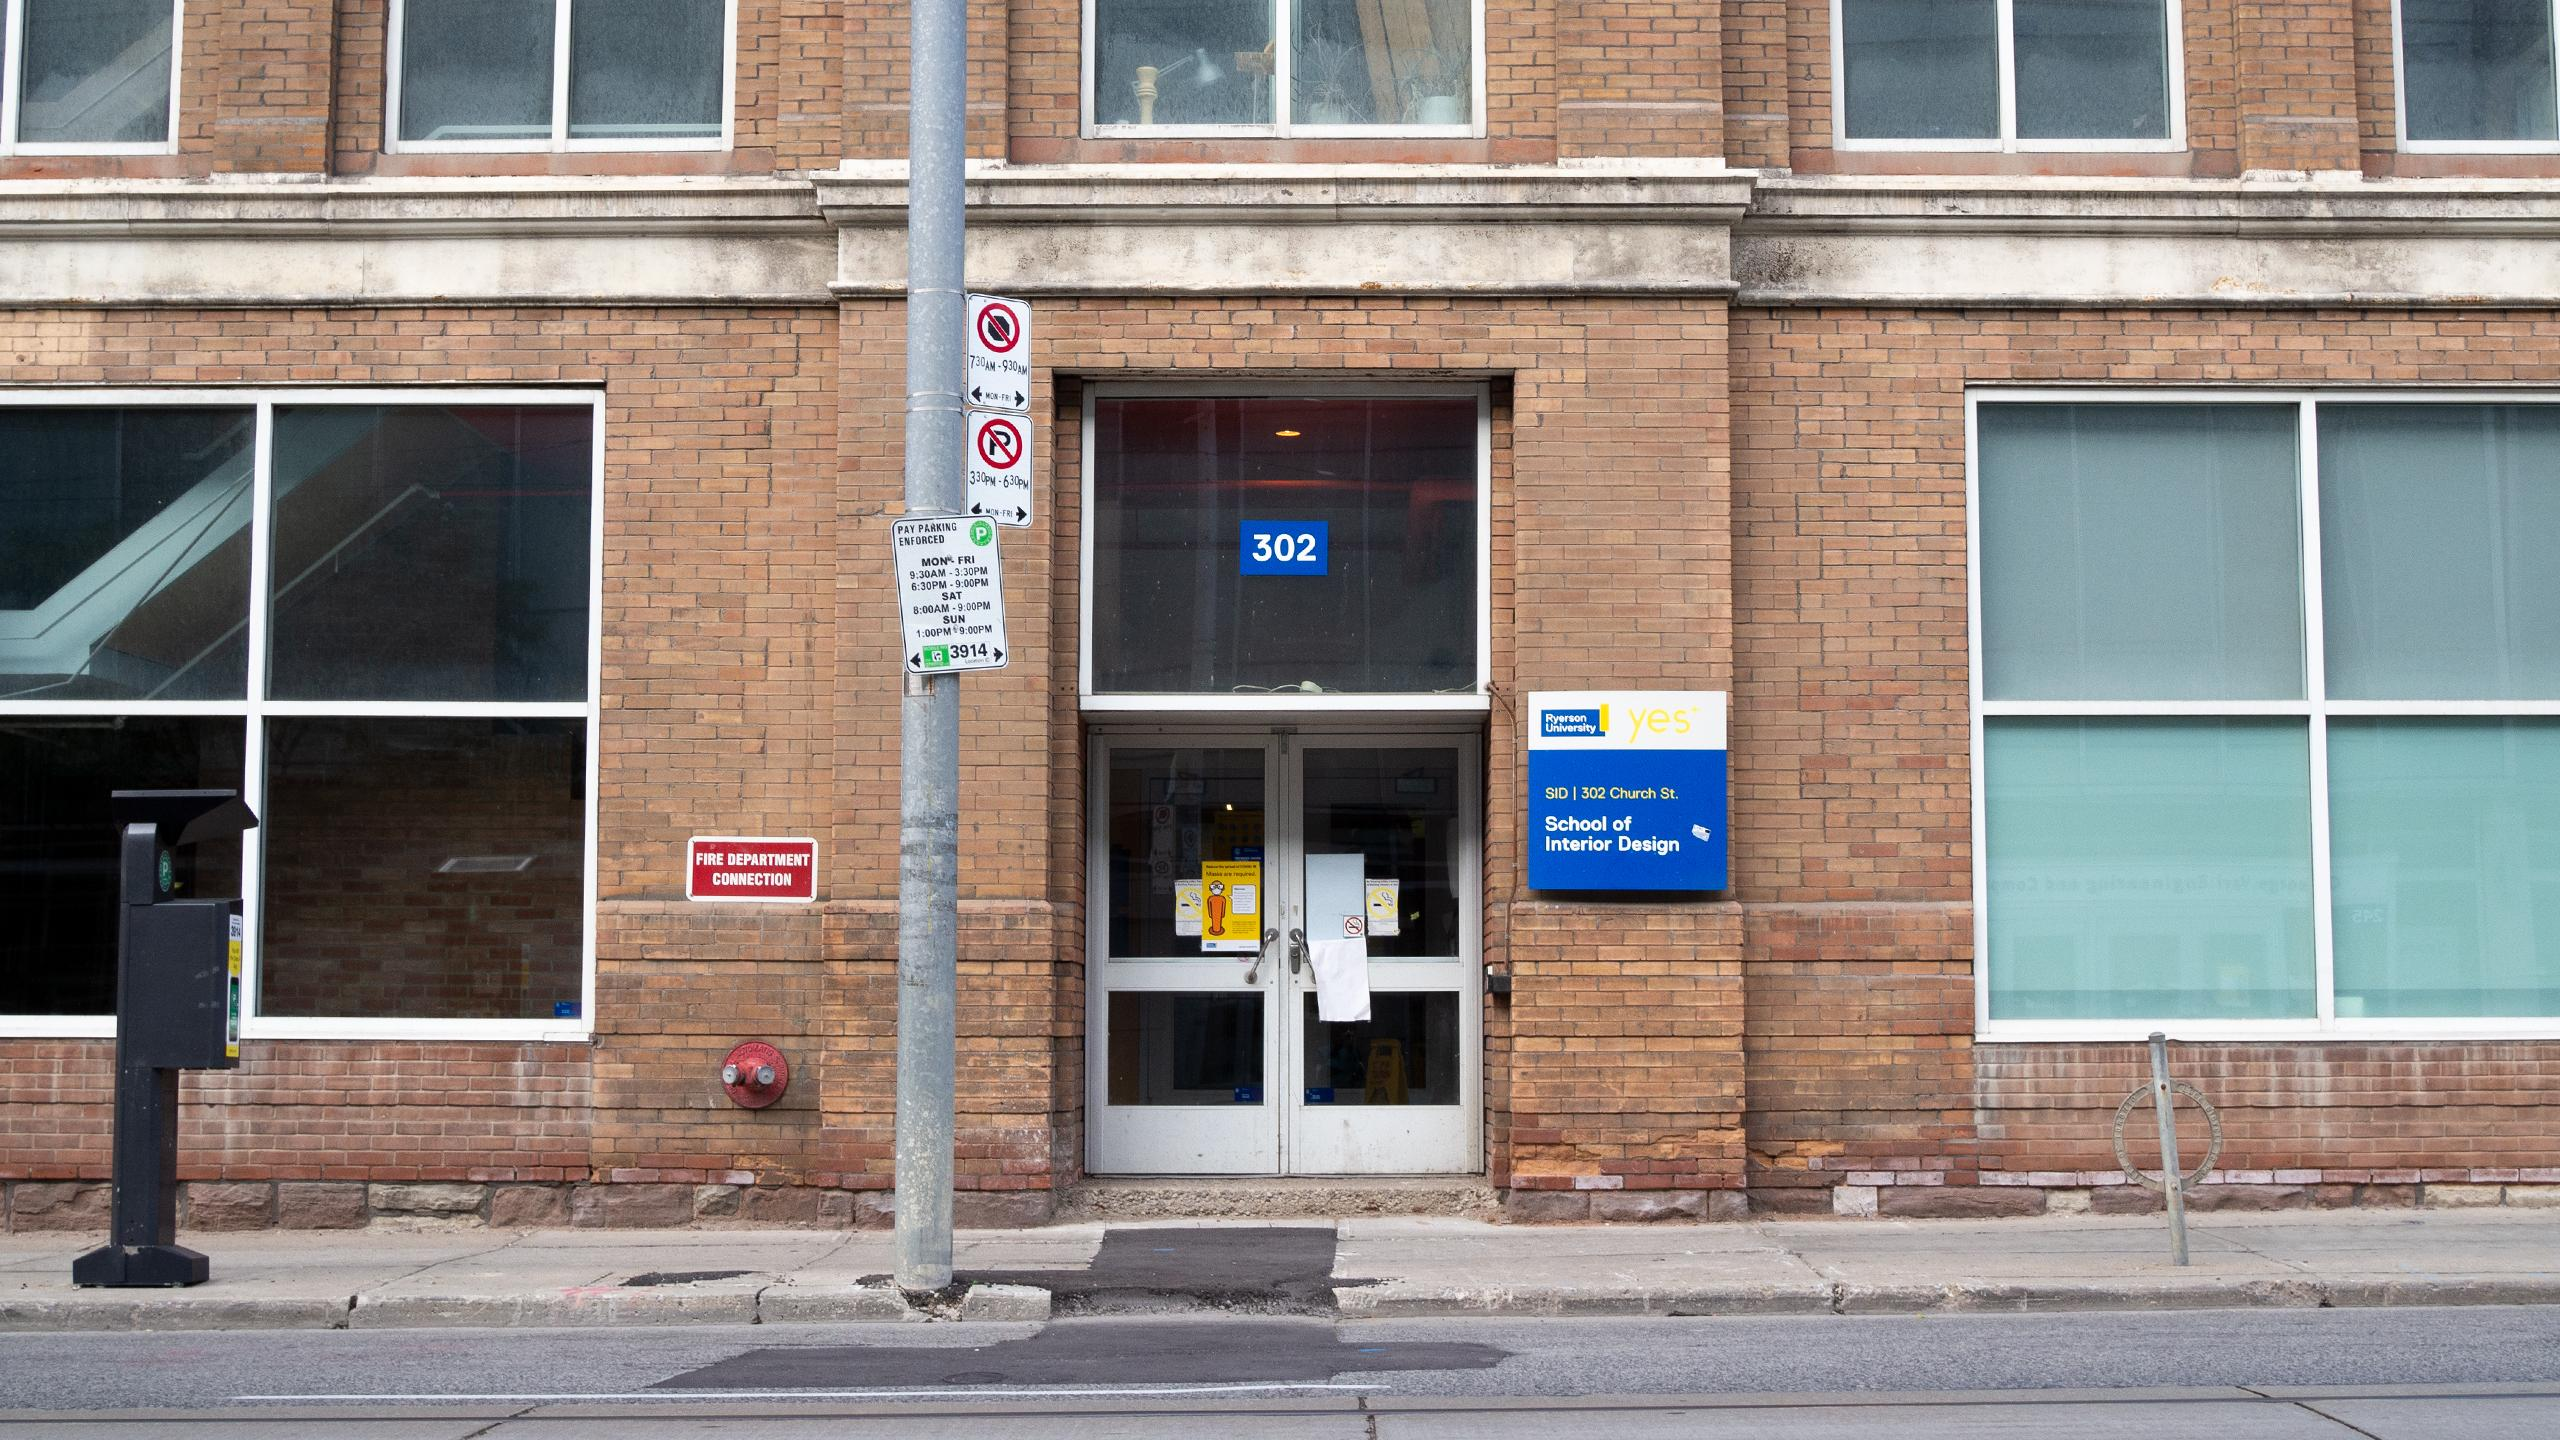 A picture of the entrance to the Ryerson School of Interior Design at 302 Church Street.